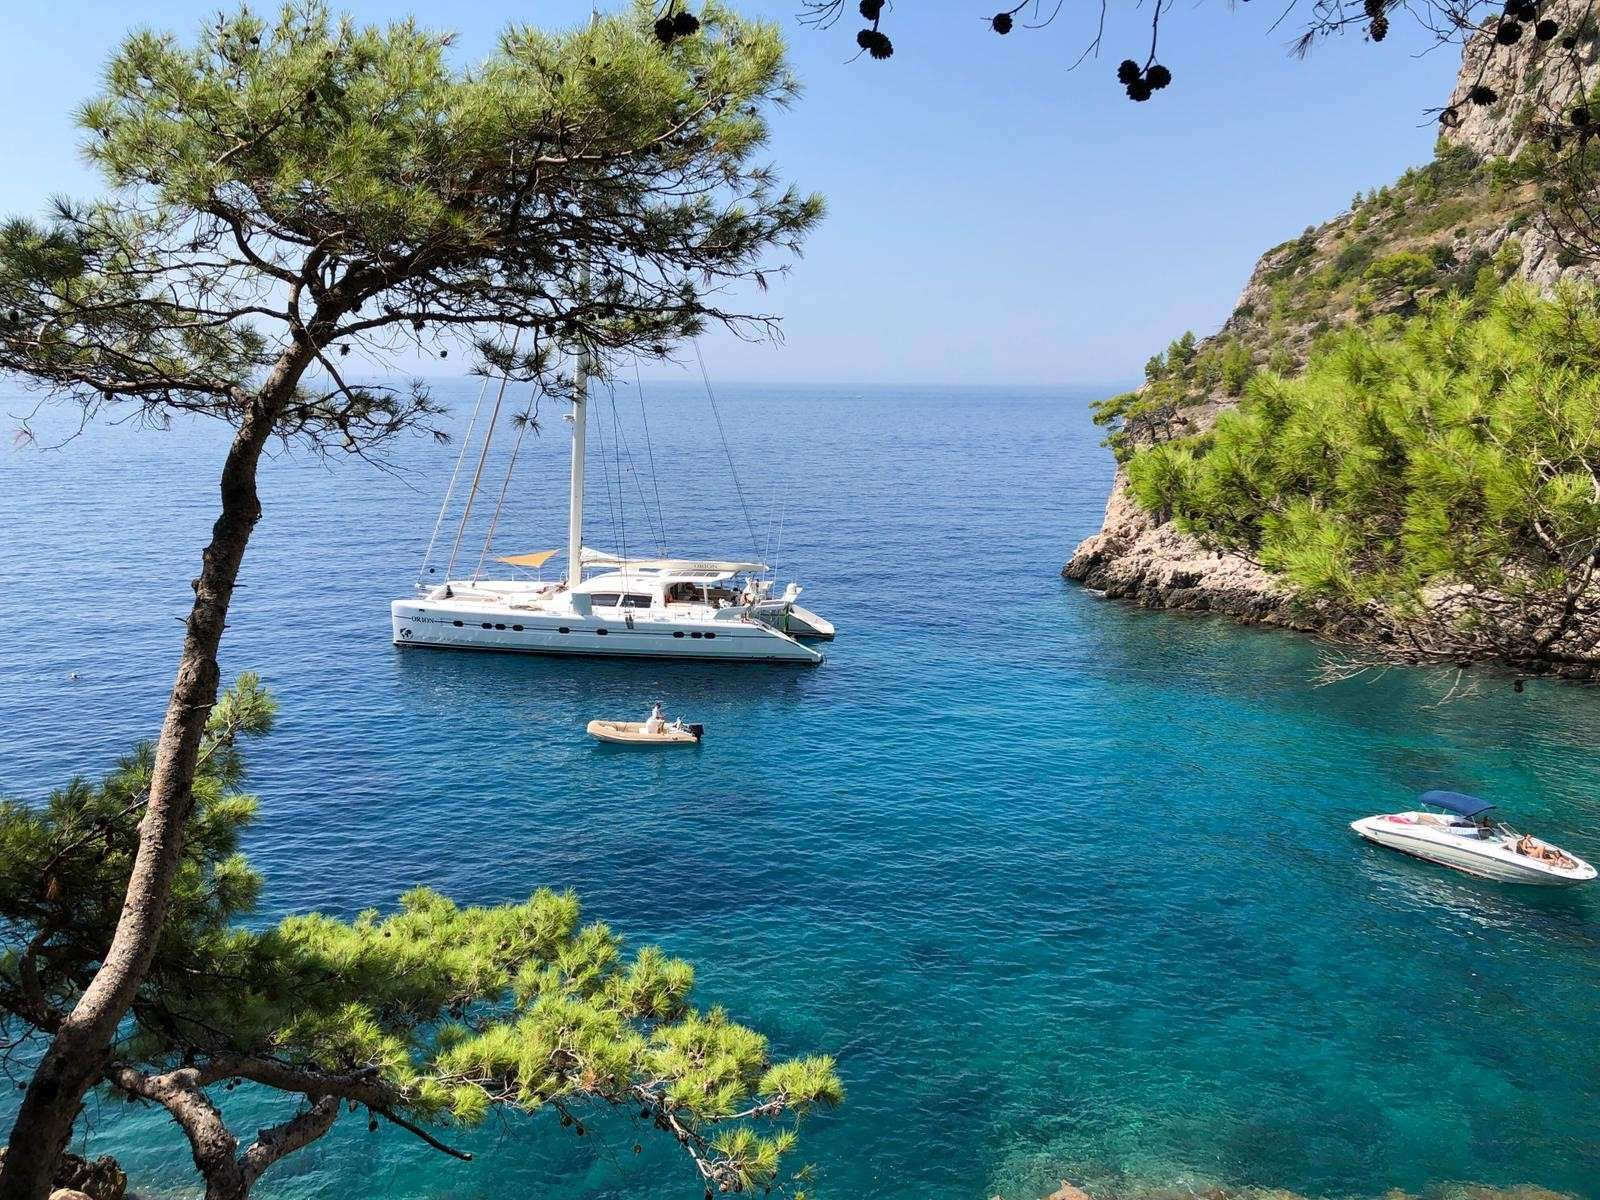 ORION Catana 90 Moored in a quiet bay